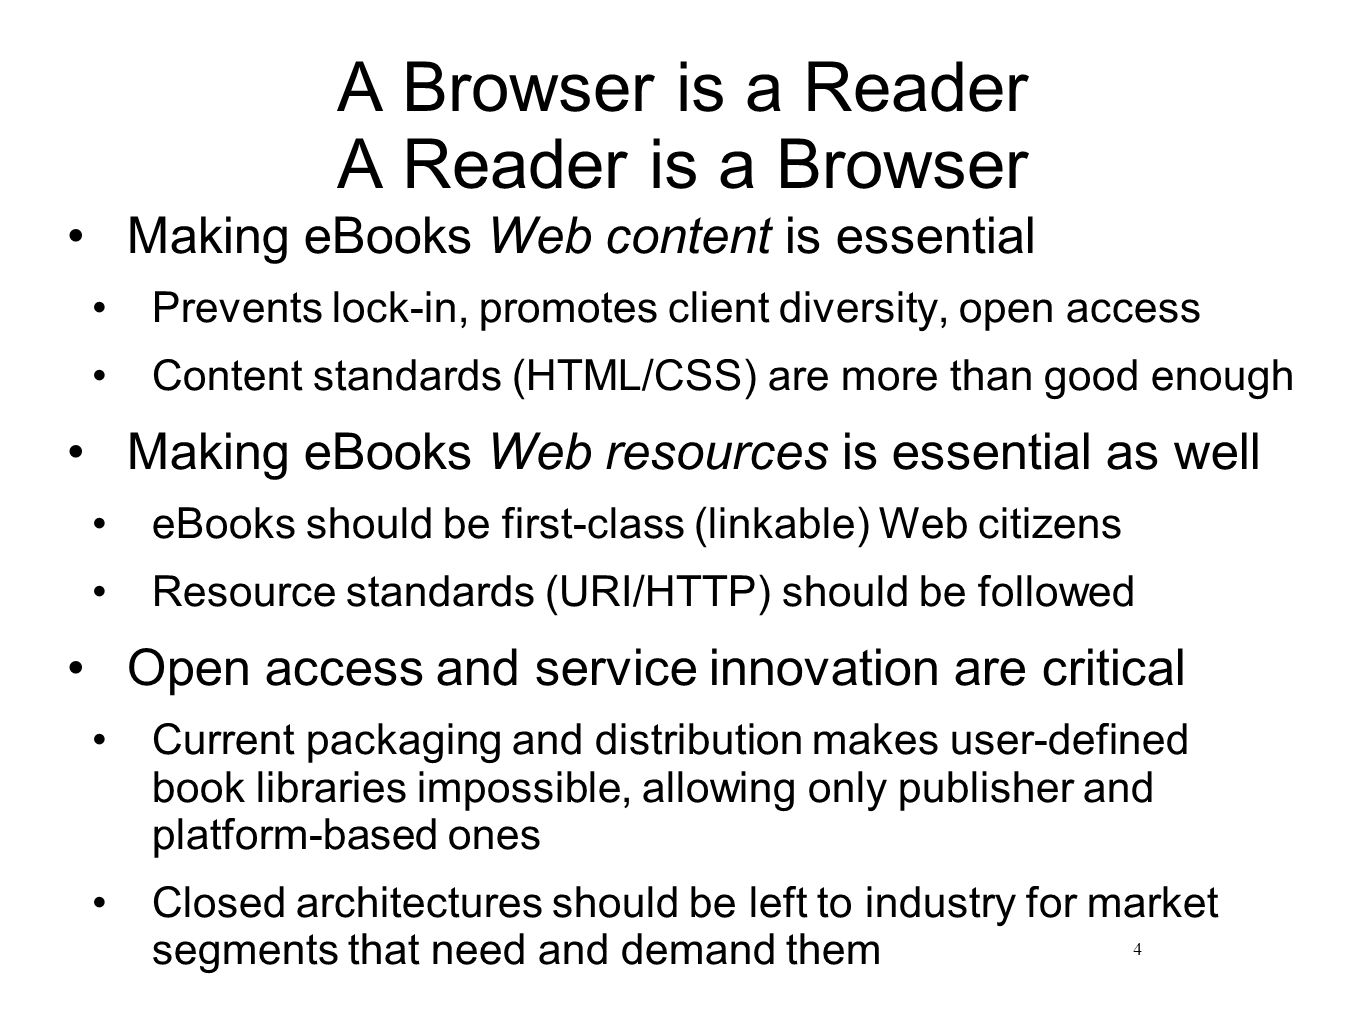 A Browser is a Reader A Reader is a Browser Making eBooks Web content is essential Prevents lock-in, promotes client diversity, open access Content standards (HTML/CSS) are more than good enough Making eBooks Web resources is essential as well eBooks should be first-class (linkable) Web citizens Resource standards (URI/HTTP) should be followed Open access and service innovation are critical Current packaging and distribution makes user-defined book libraries impossible, allowing only publisher and platform-based ones Closed architectures should be left to industry for market segments that need and demand them 4